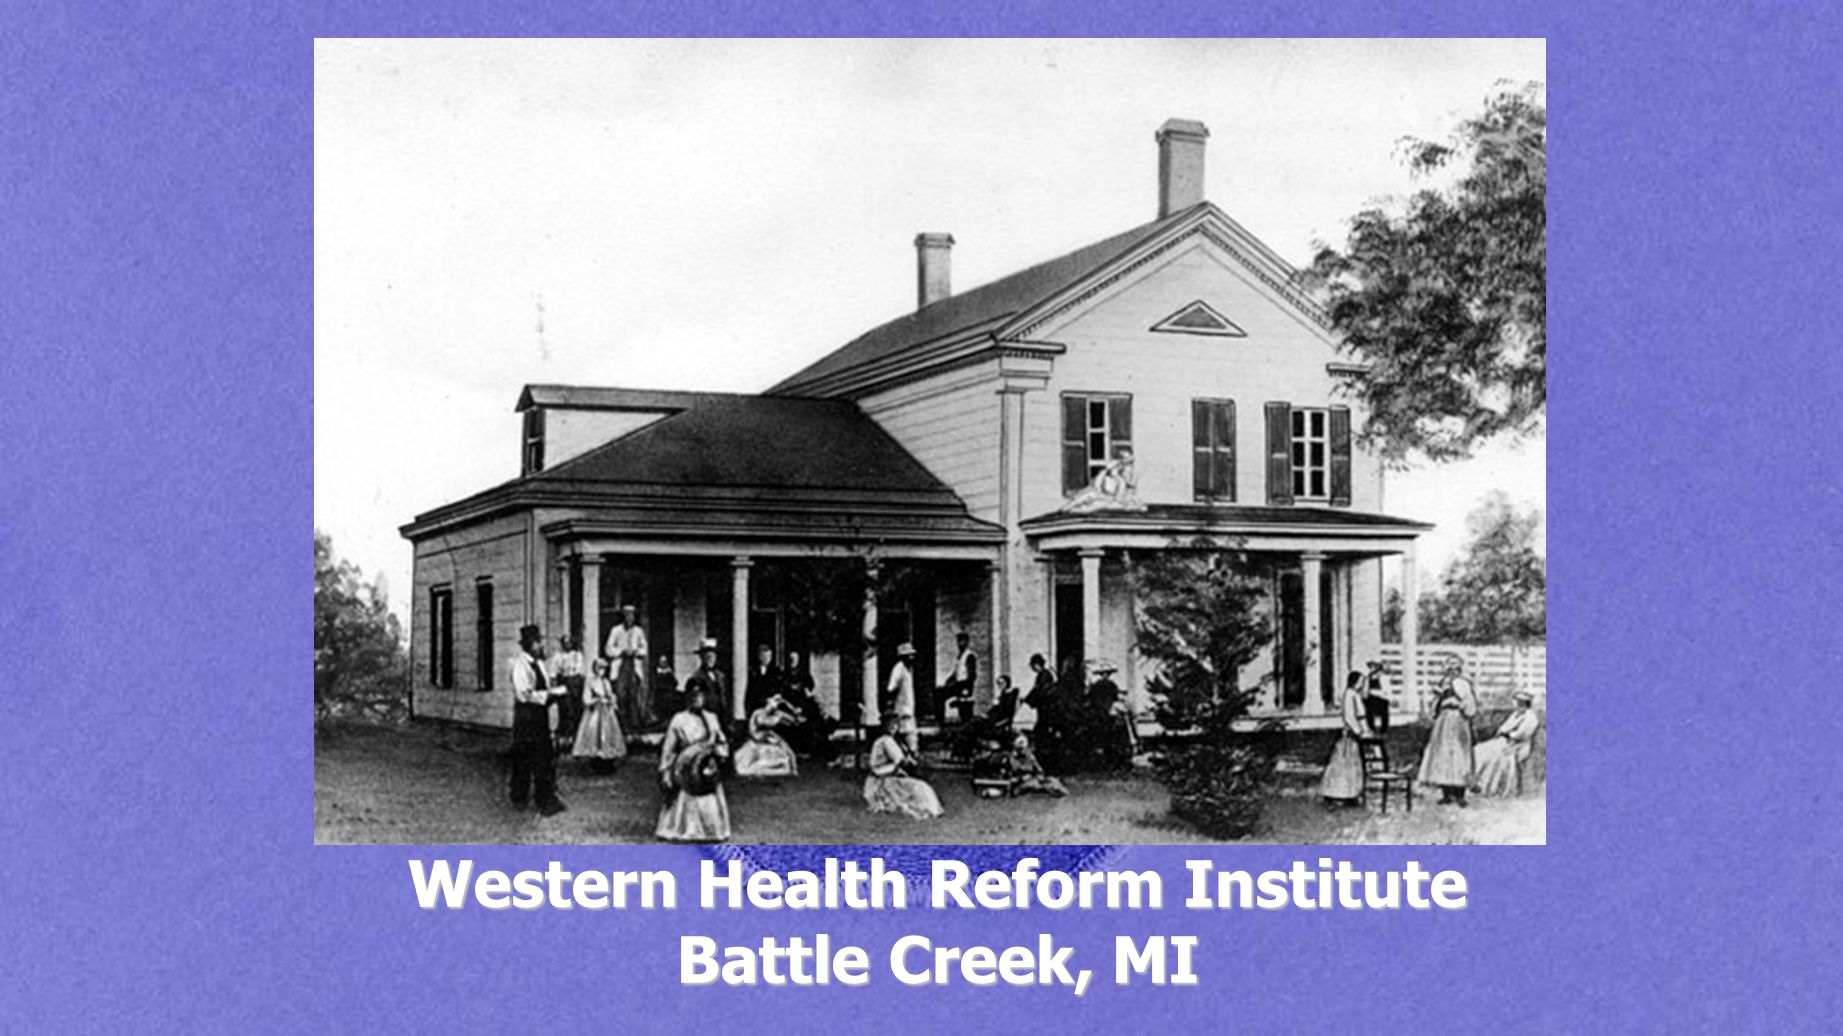 Western Health Reform Institute Battle Creek, MI